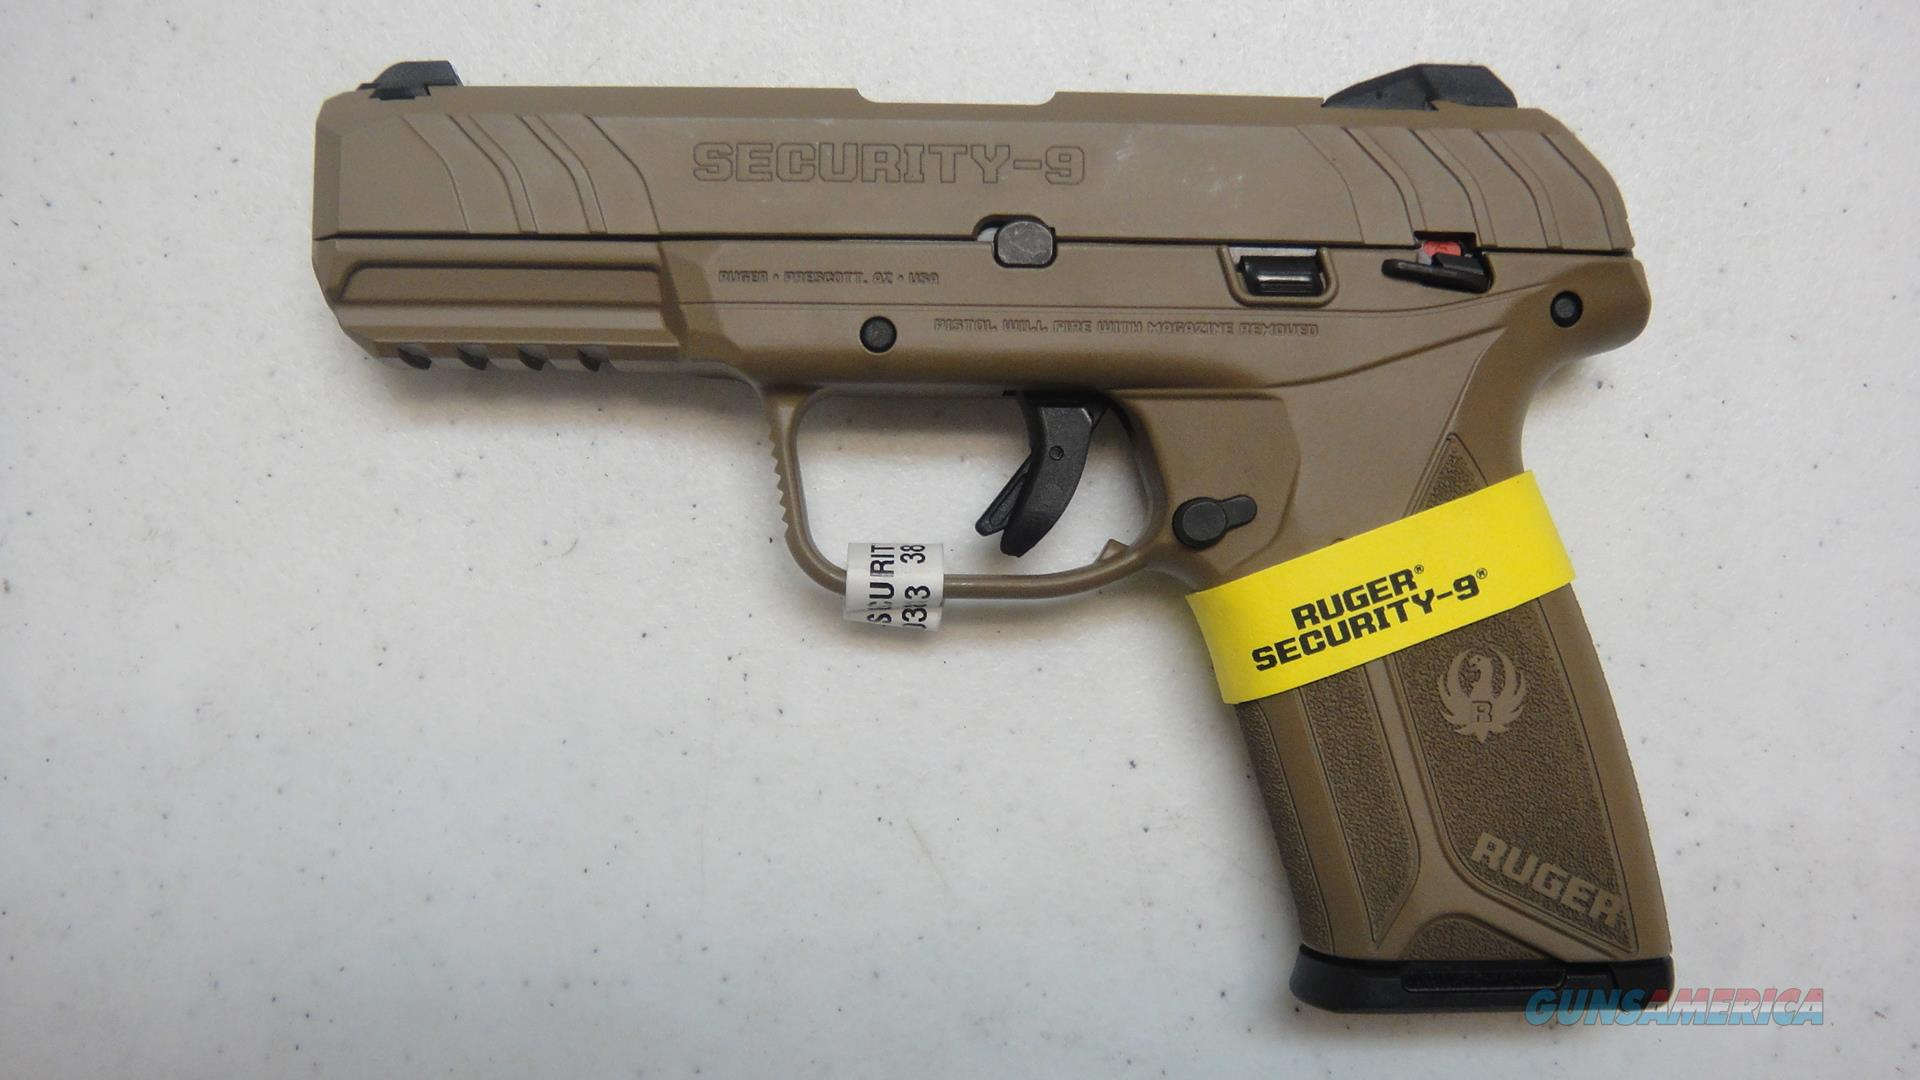 Ruger Security 9 w/ FDE finish.  Guns > Pistols > Ruger Semi-Auto Pistols > Security 9